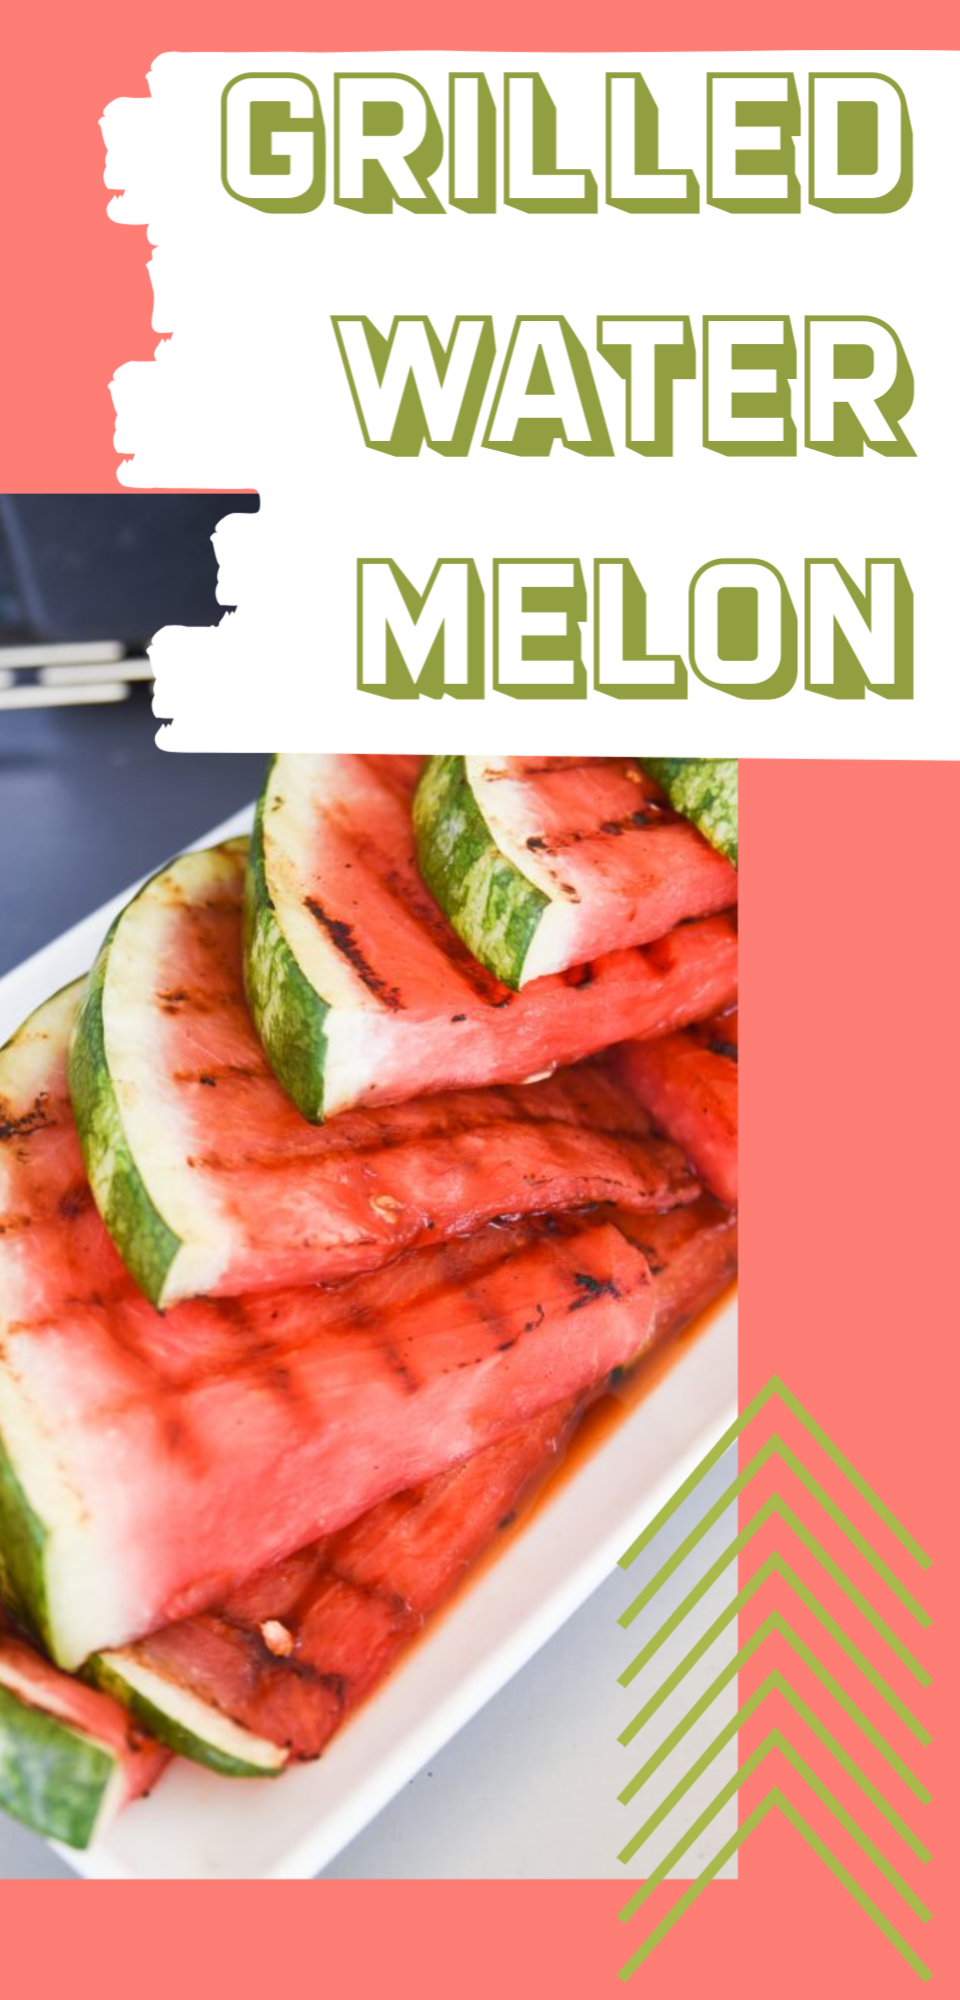 Freshly Grilled Watermelon is a unique and delicious snack that puts a twist on a classic summer fruit! Grilled Watermelon offers a sweet, salty, and smokey flavor that only leaves you wanting more. via @simplysidedishes89